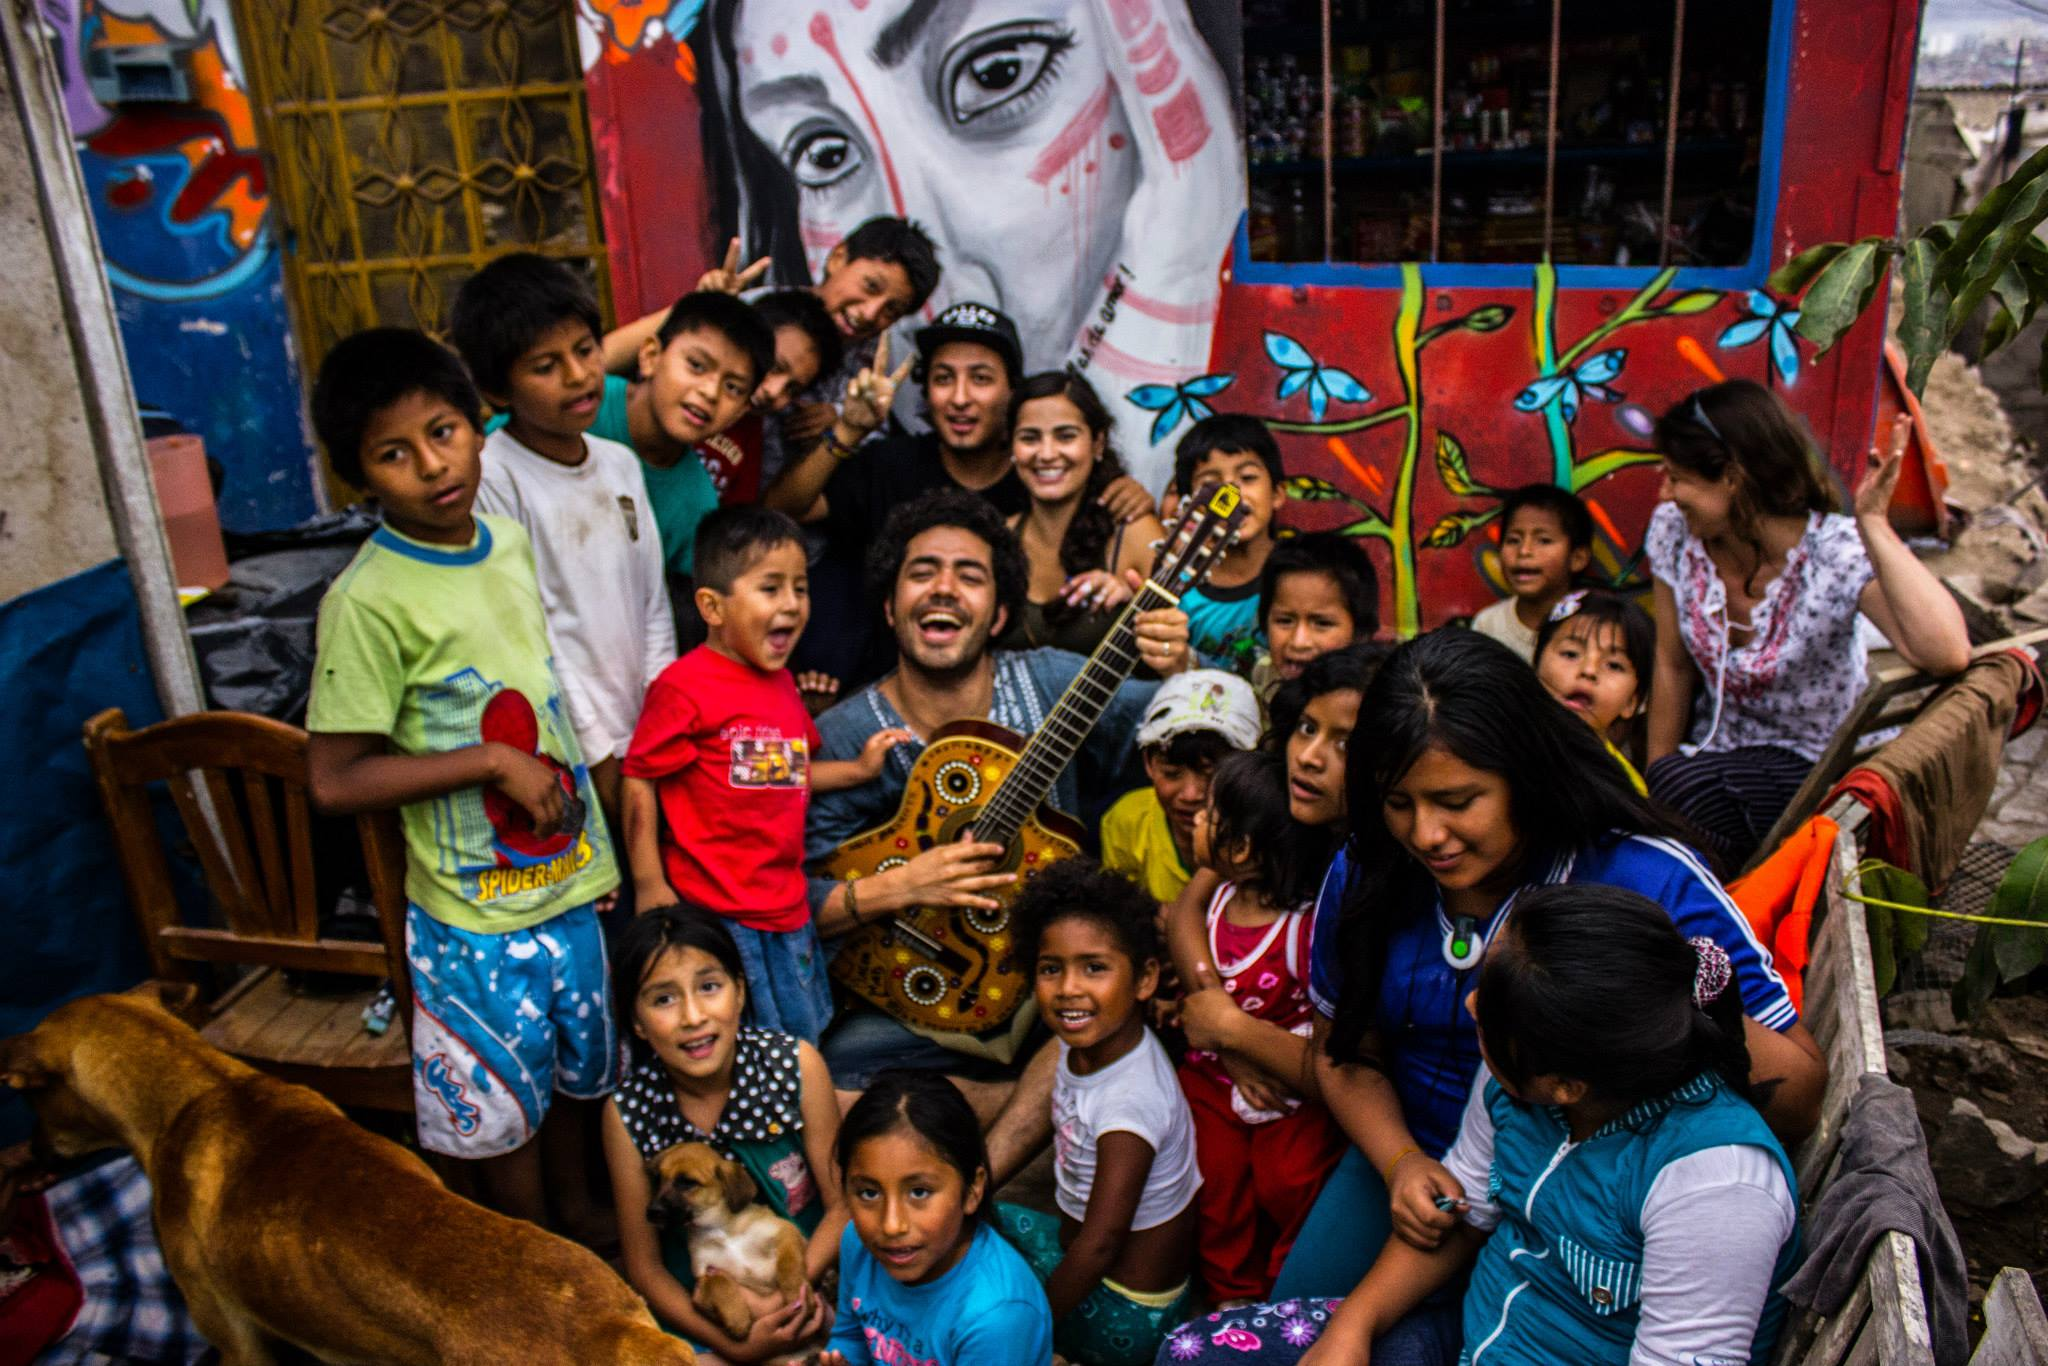 Social work and benefit concerts for children and communities with educational needs -Vibrating Planet in Lima,Peru - January 2014